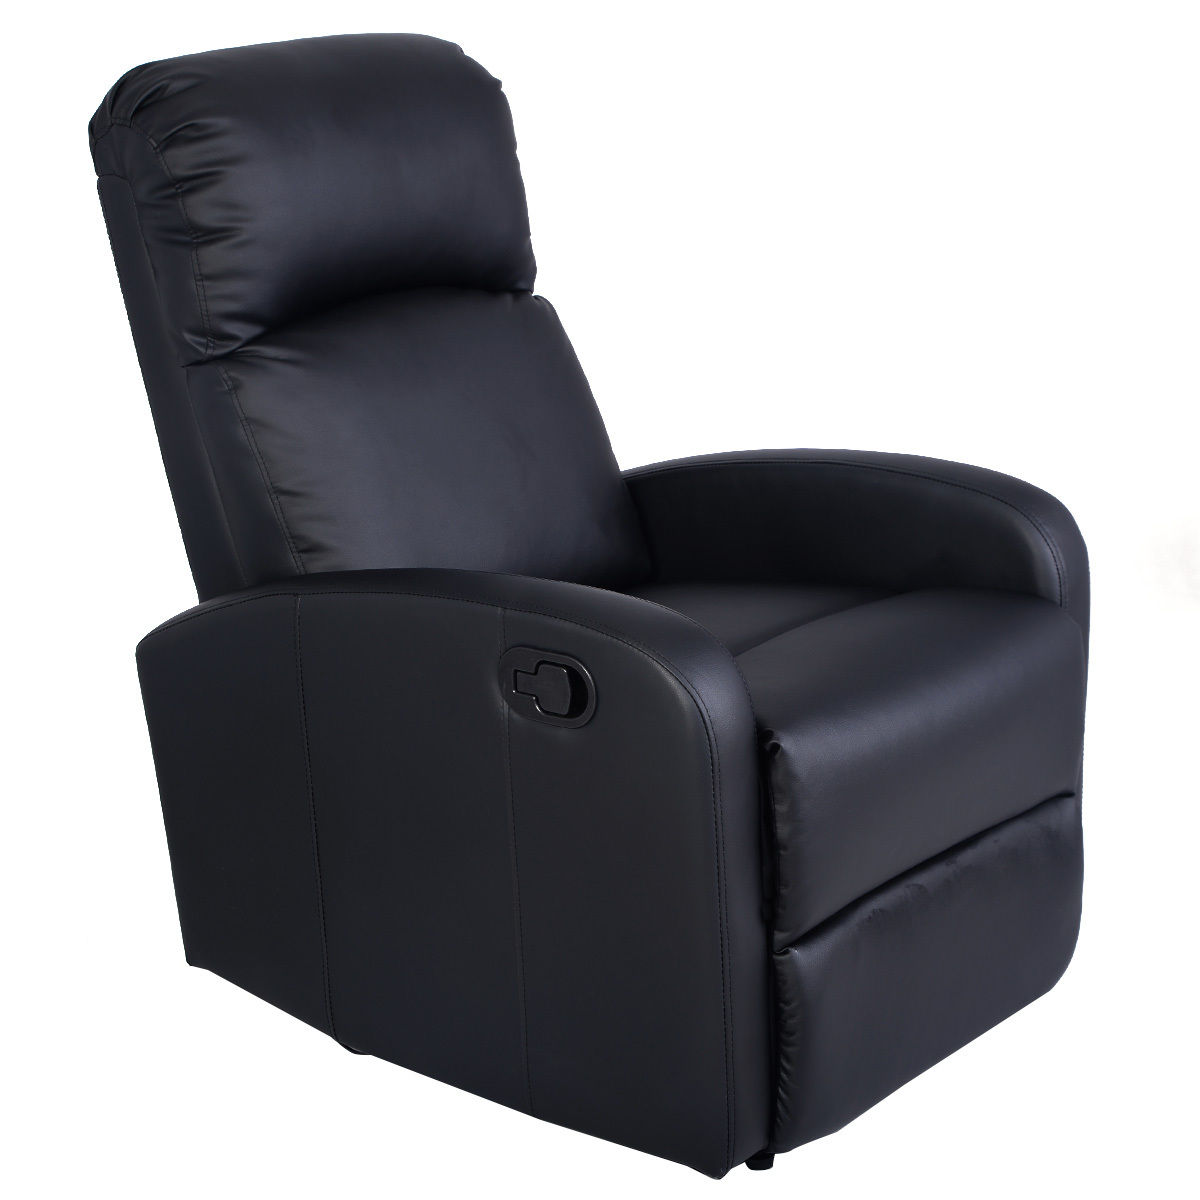 Costway Manual Recliner Chair Black Lounger Leather Sofa Seat Home